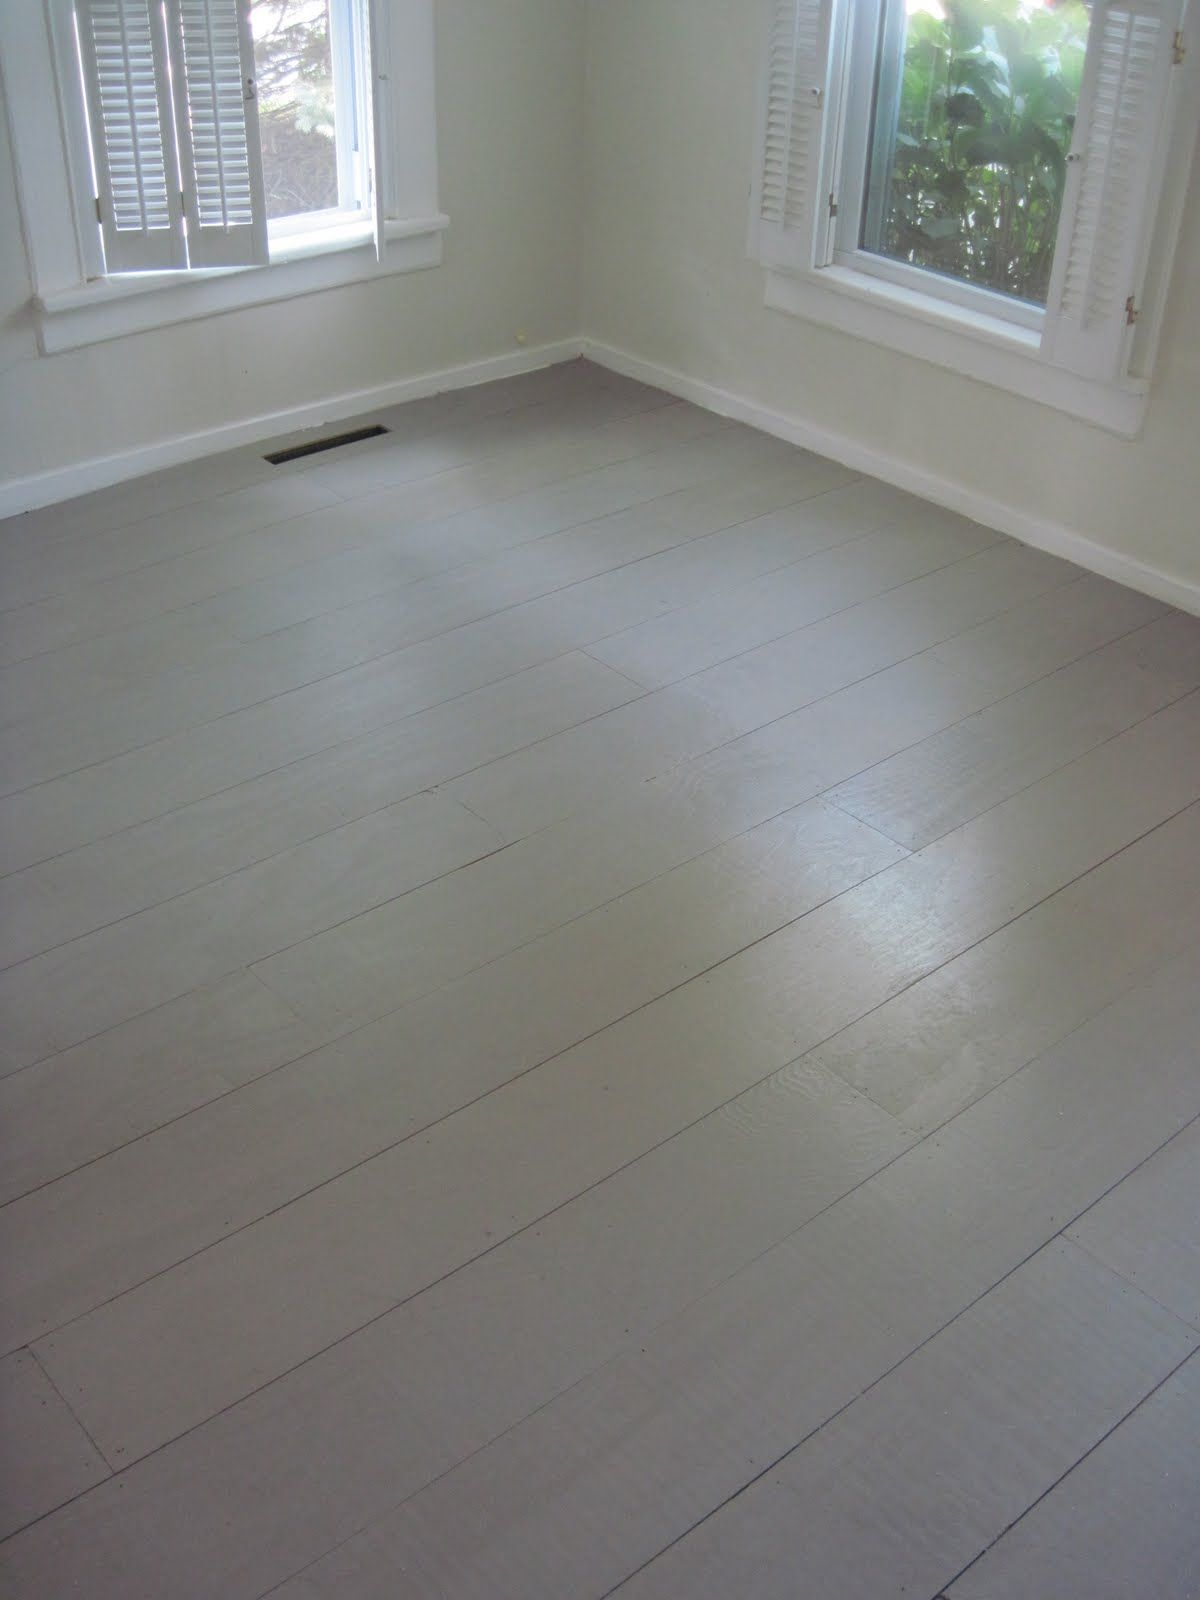 A Floor Using Plywood As Finished Back To Home Design Wide. Painted Plywood Living Room Floor   Home Decorate